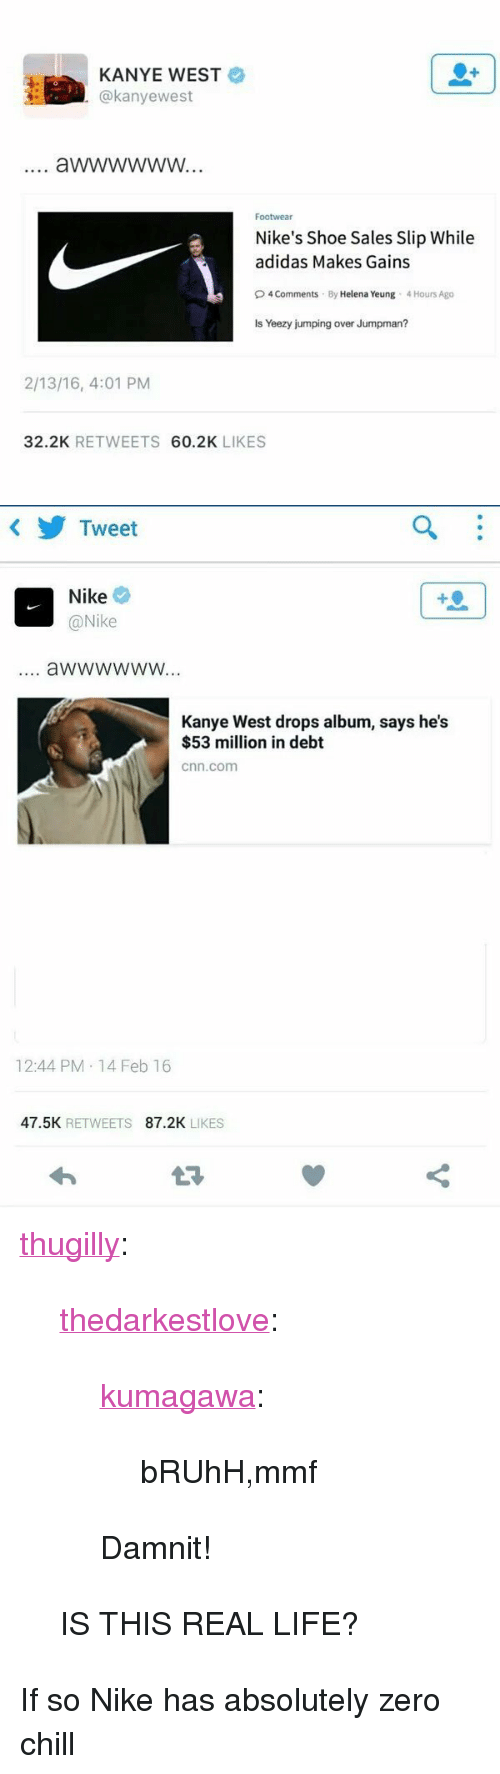 """Jumpman: KANYE WEST  @kanyewest  Footwear  Nike's Shoe Sales Slip While  adidas Makes Gains  O4 Comments By Helena Yeung 4 Hours Ago  Is Yeezy jumping over Jumpman?  2/13/16, 4:01 PM  32.2K RETWEETS 60.2K LIKES   Tweet  Nike  @Nike  4  aWwwwwW...  Kanye West drops album, says he's  $53 million in debt  cnn.com  12:44 PM 14 Feb 16  47.5K RETWEETS 87.2K LIKES <p><a class=""""tumblr_blog"""" href=""""http://thugilly.tumblr.com/post/139344119488"""">thugilly</a>:</p> <blockquote> <p><a class=""""tumblr_blog"""" href=""""http://thedarkestlove.tumblr.com/post/139344021532"""">thedarkestlove</a>:</p> <blockquote> <p><a class=""""tumblr_blog"""" href=""""http://kumagawa.tumblr.com/post/139339444294"""">kumagawa</a>:</p> <blockquote> <p>bRUhH,mmf</p> </blockquote> <p>Damnit!</p> </blockquote> <p>IS THIS REAL LIFE?</p> </blockquote>  <p>If so Nike has absolutely zero chill</p>"""